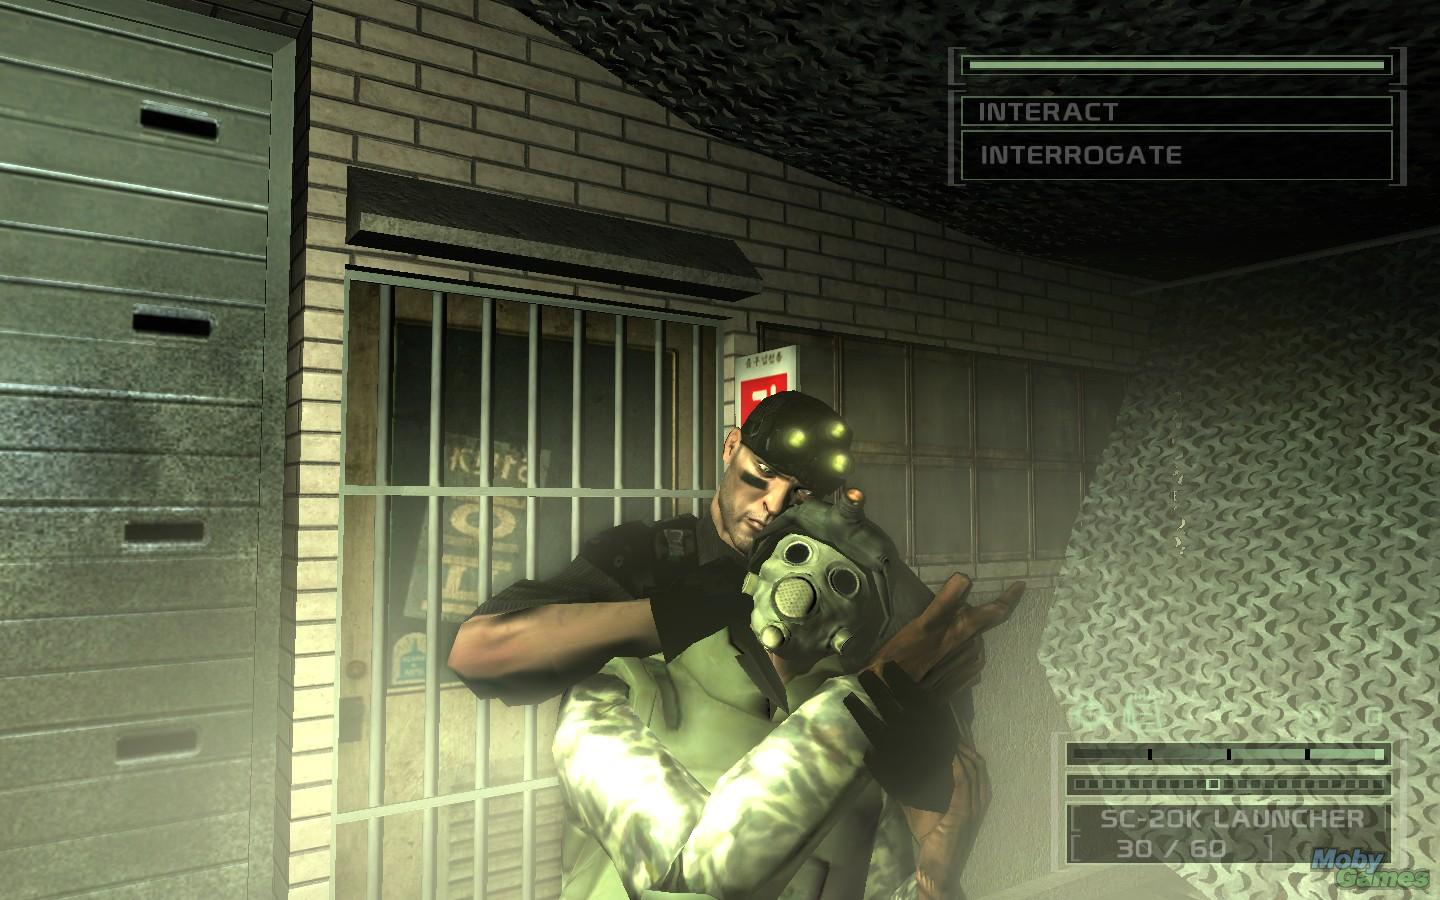 Tom clancy splinter cell chaos theory free download ocean of games.